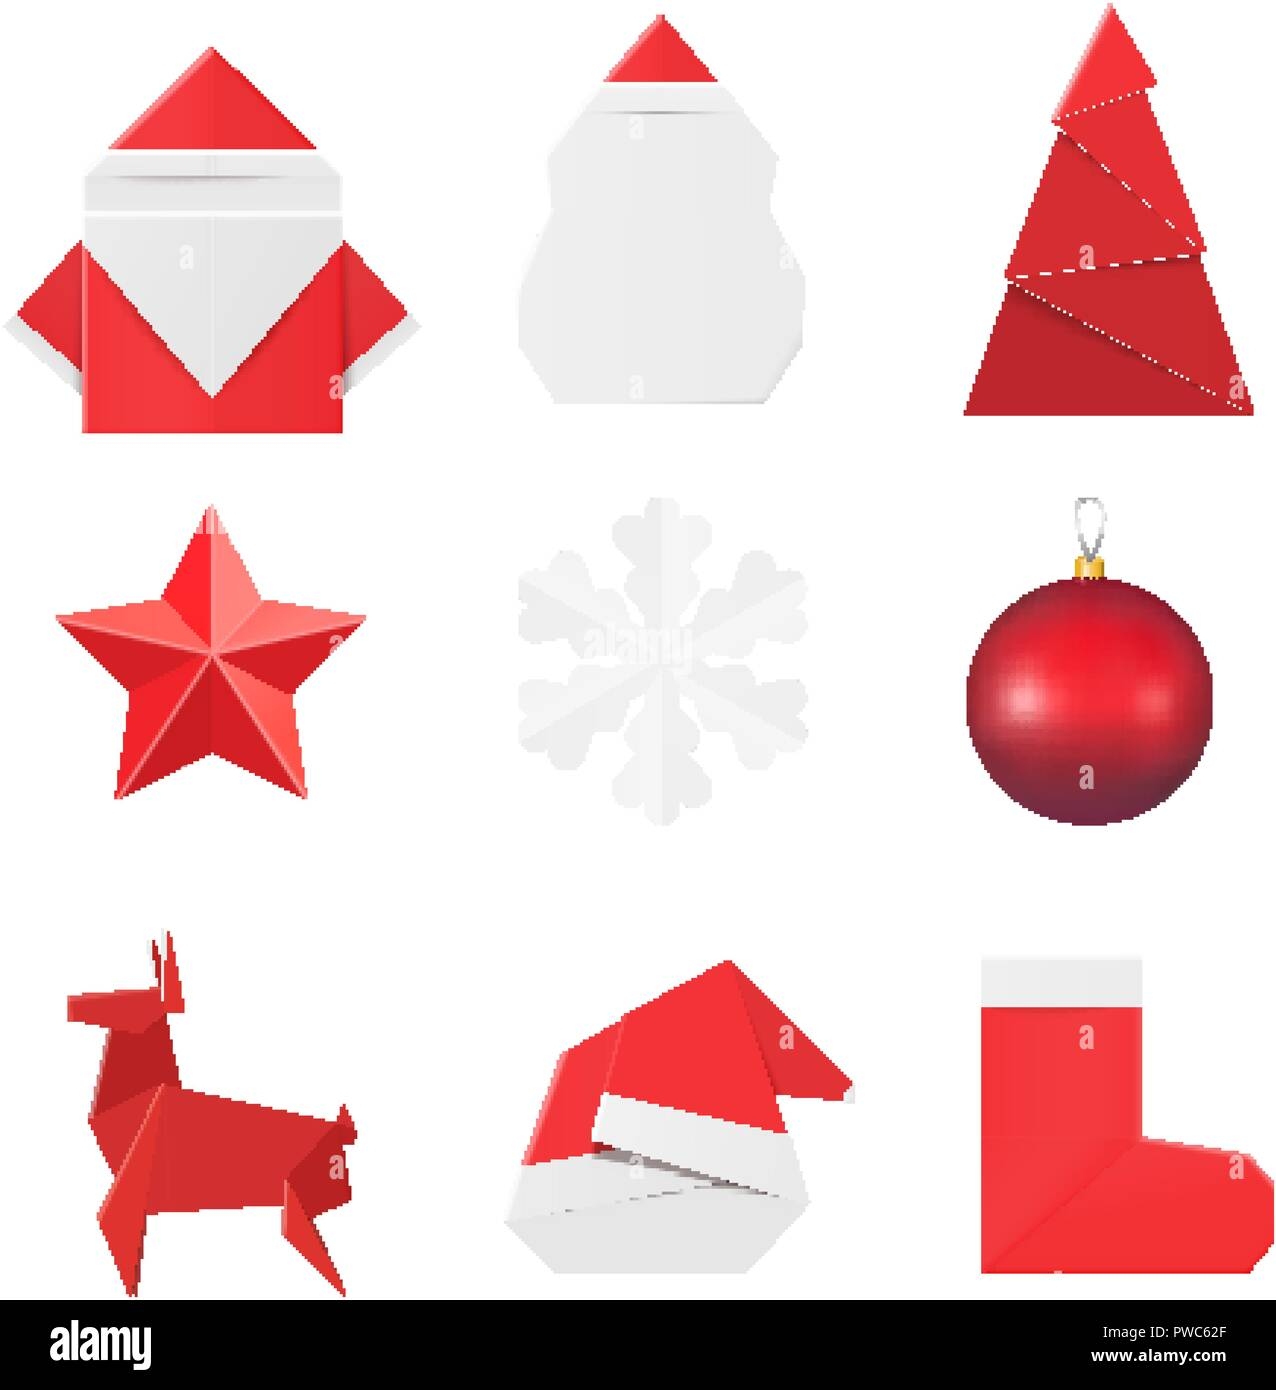 Christmas Origami.Christmas Origami Ornaments And Decorations Paper Santa